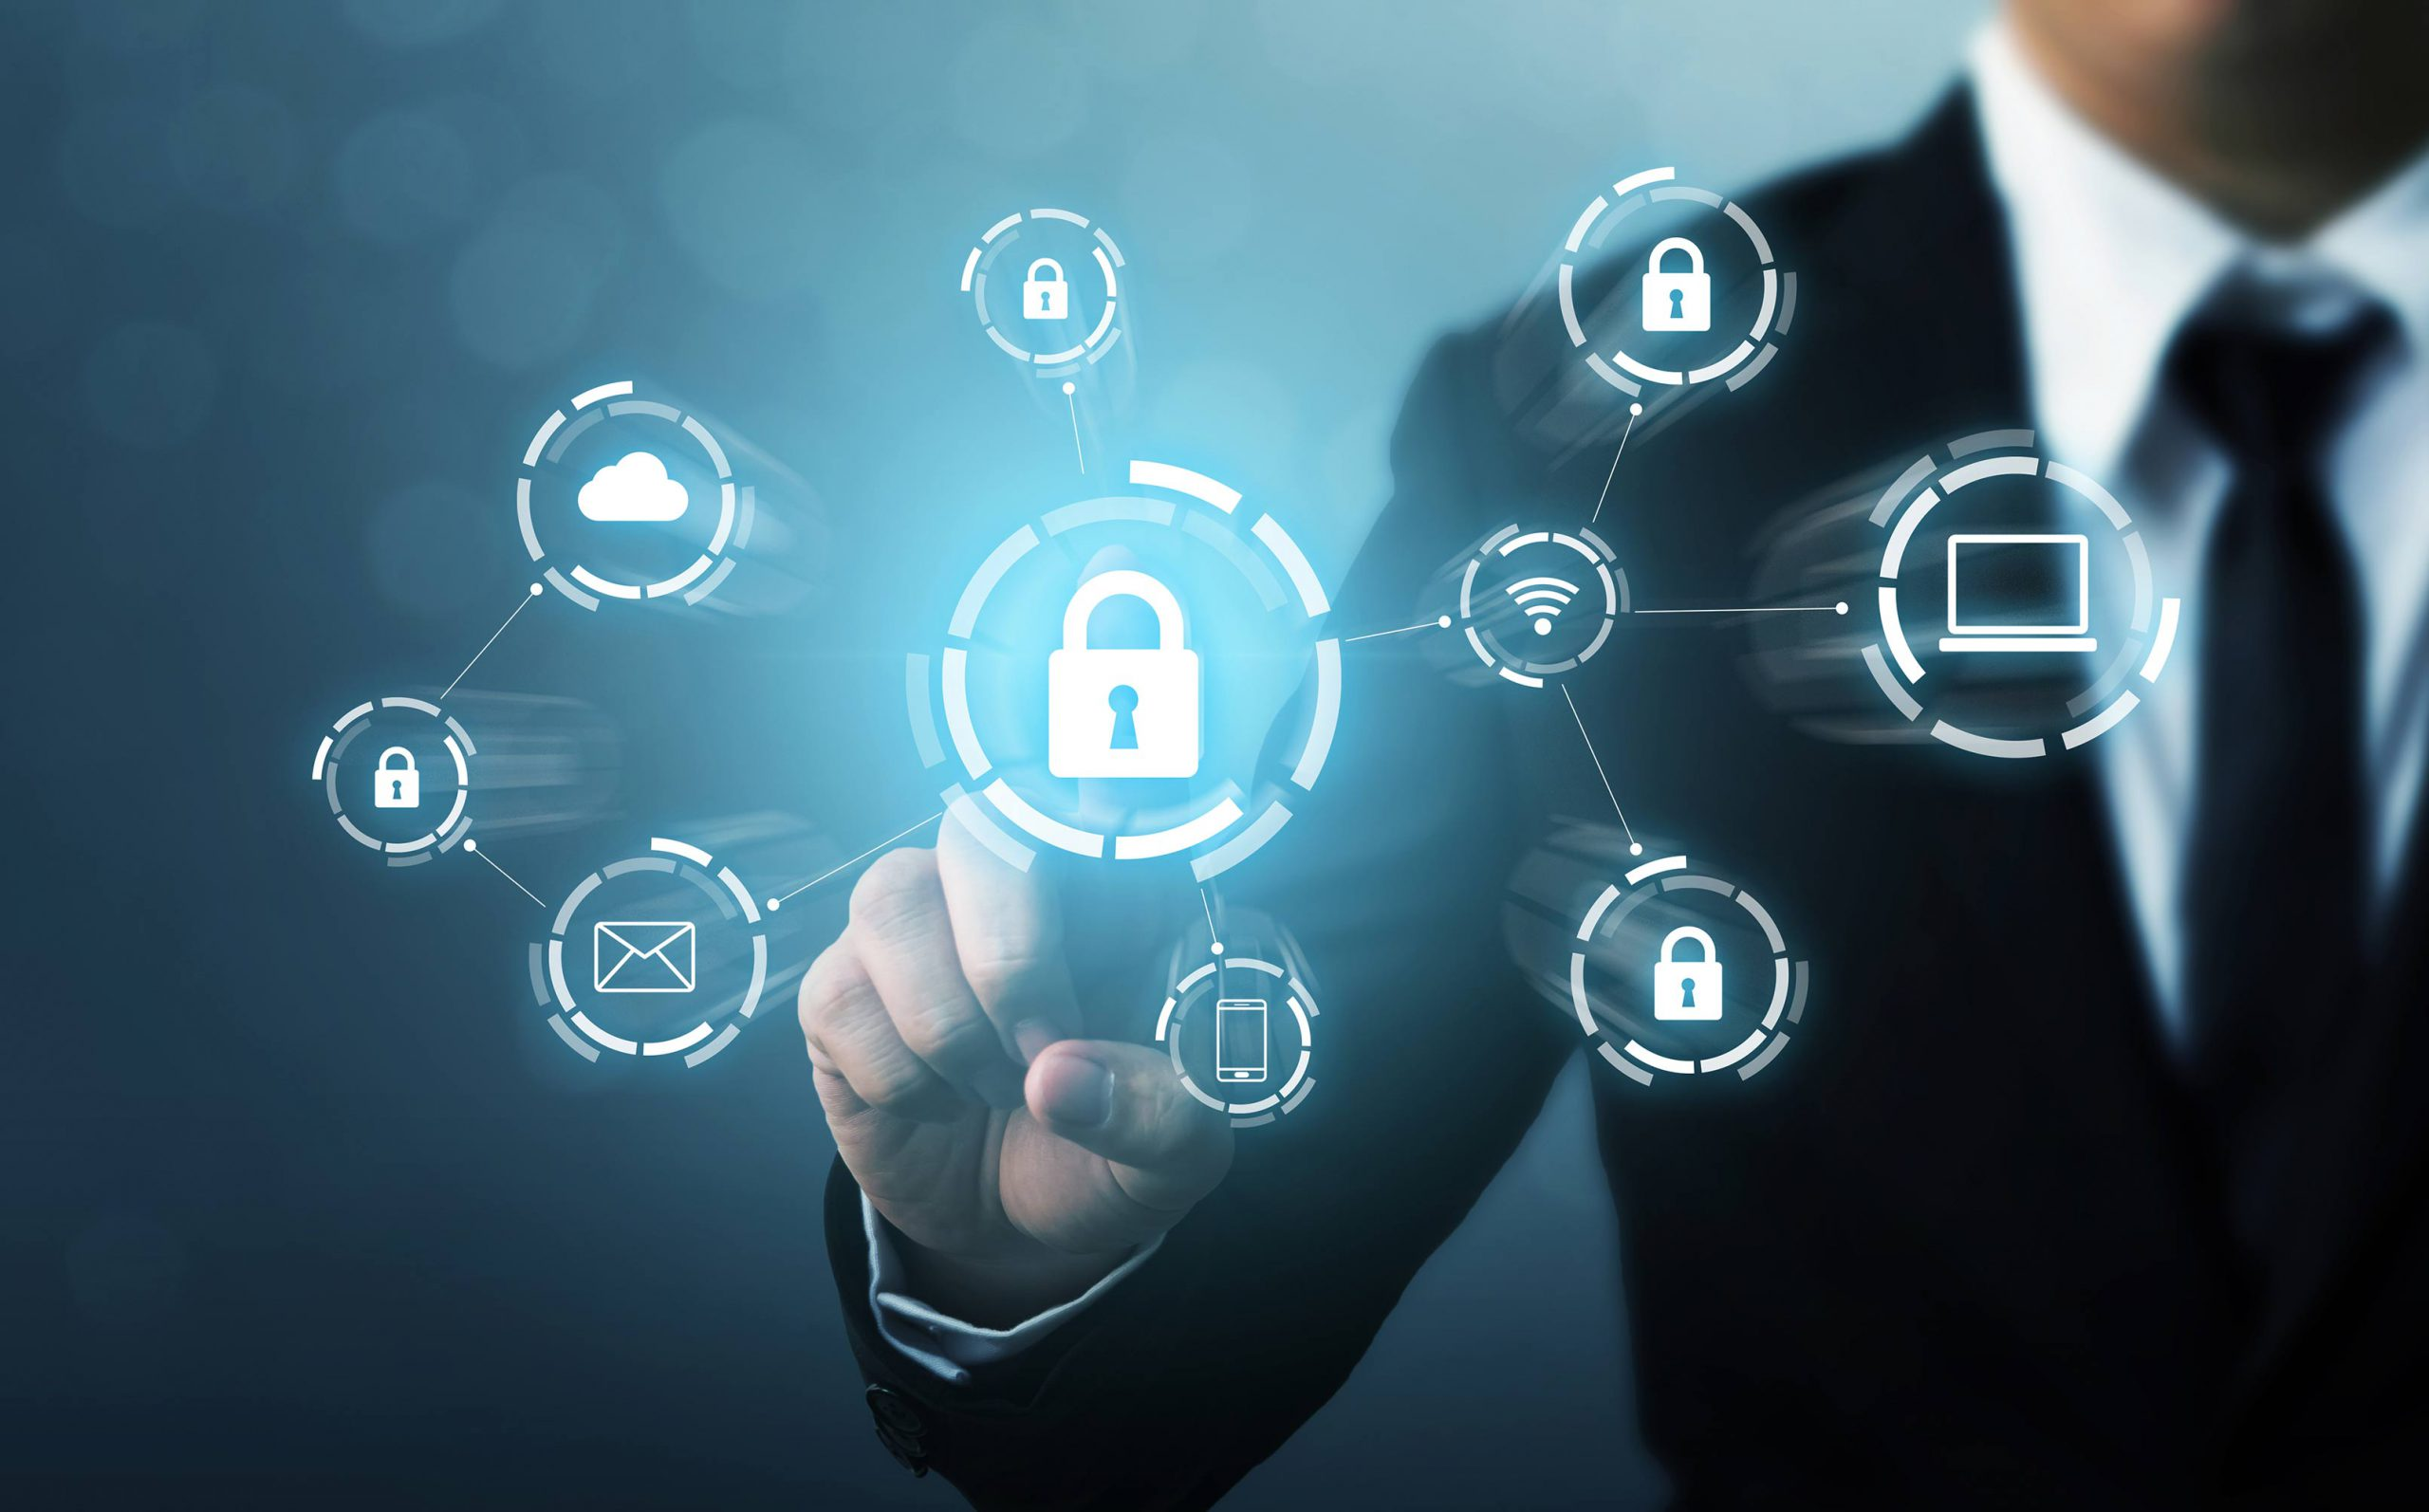 Checking device and client integrity for data security